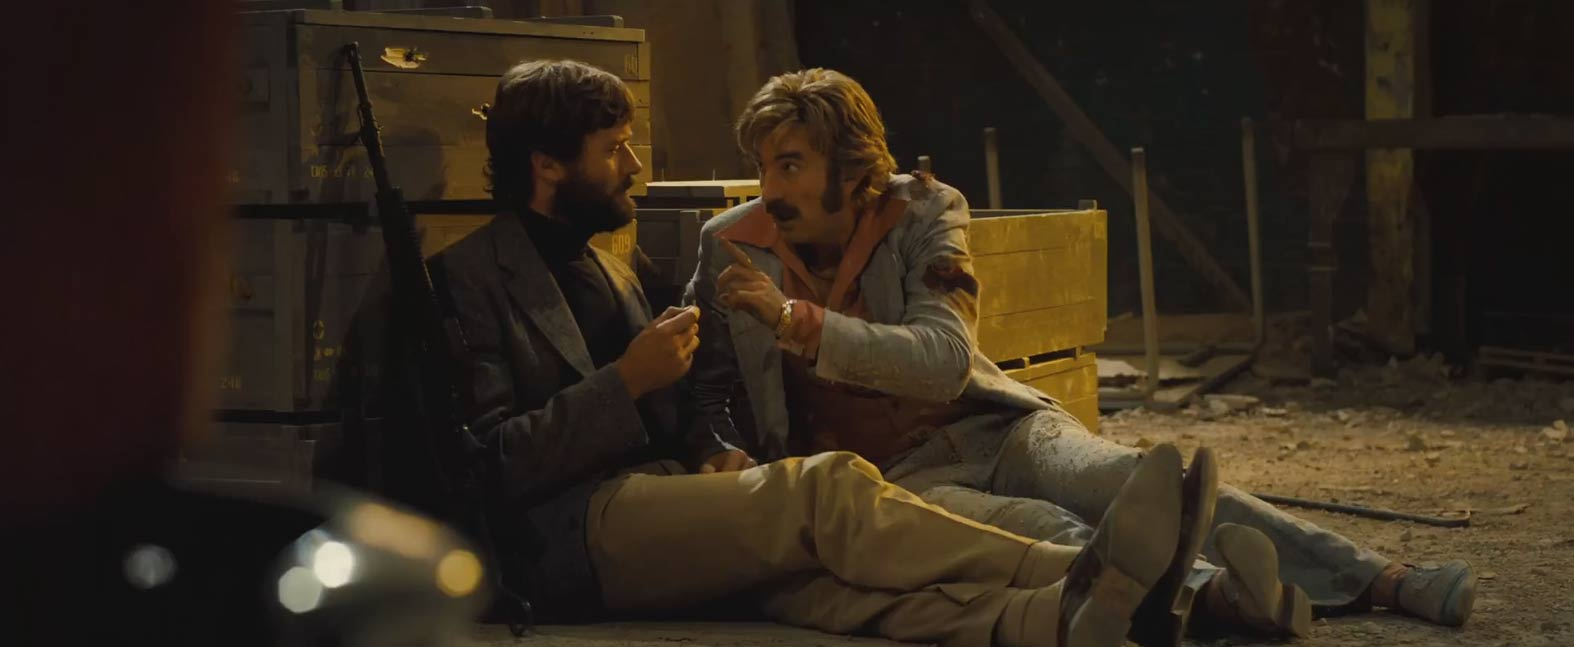 Free Fire Red Band Trailer Screen Shot 2